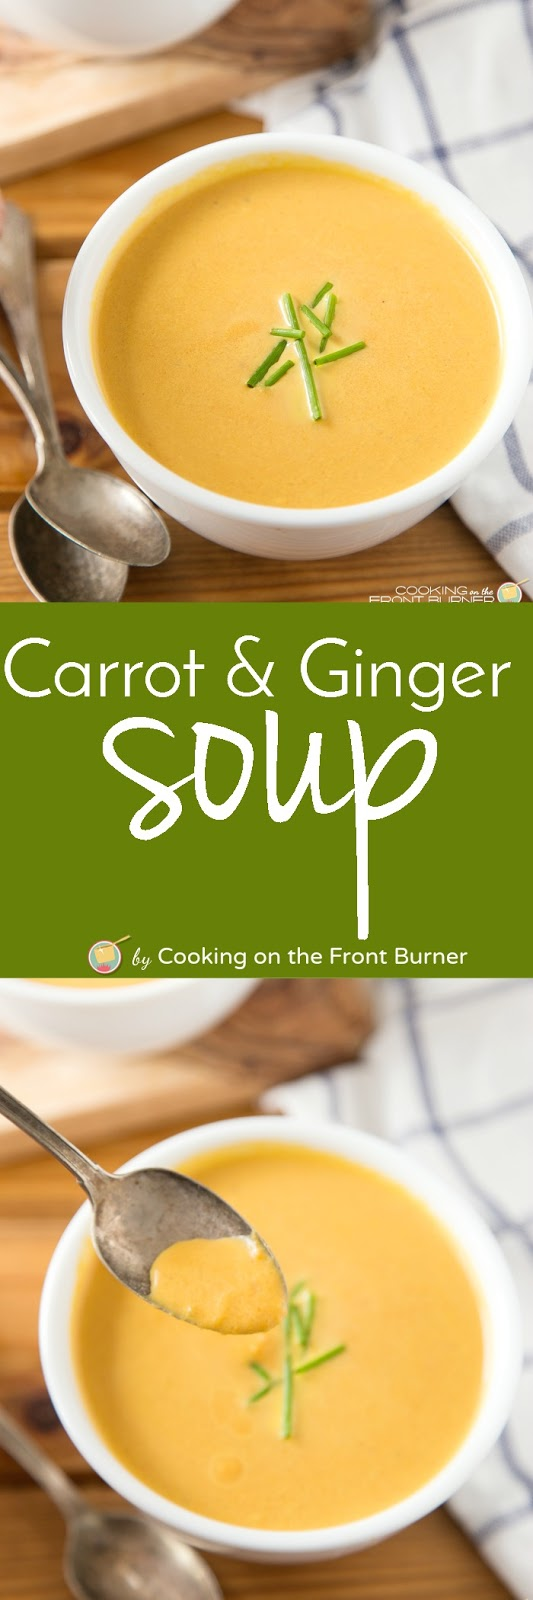 Easy Carrot Ginger Soup  Cooking on the Front Burner